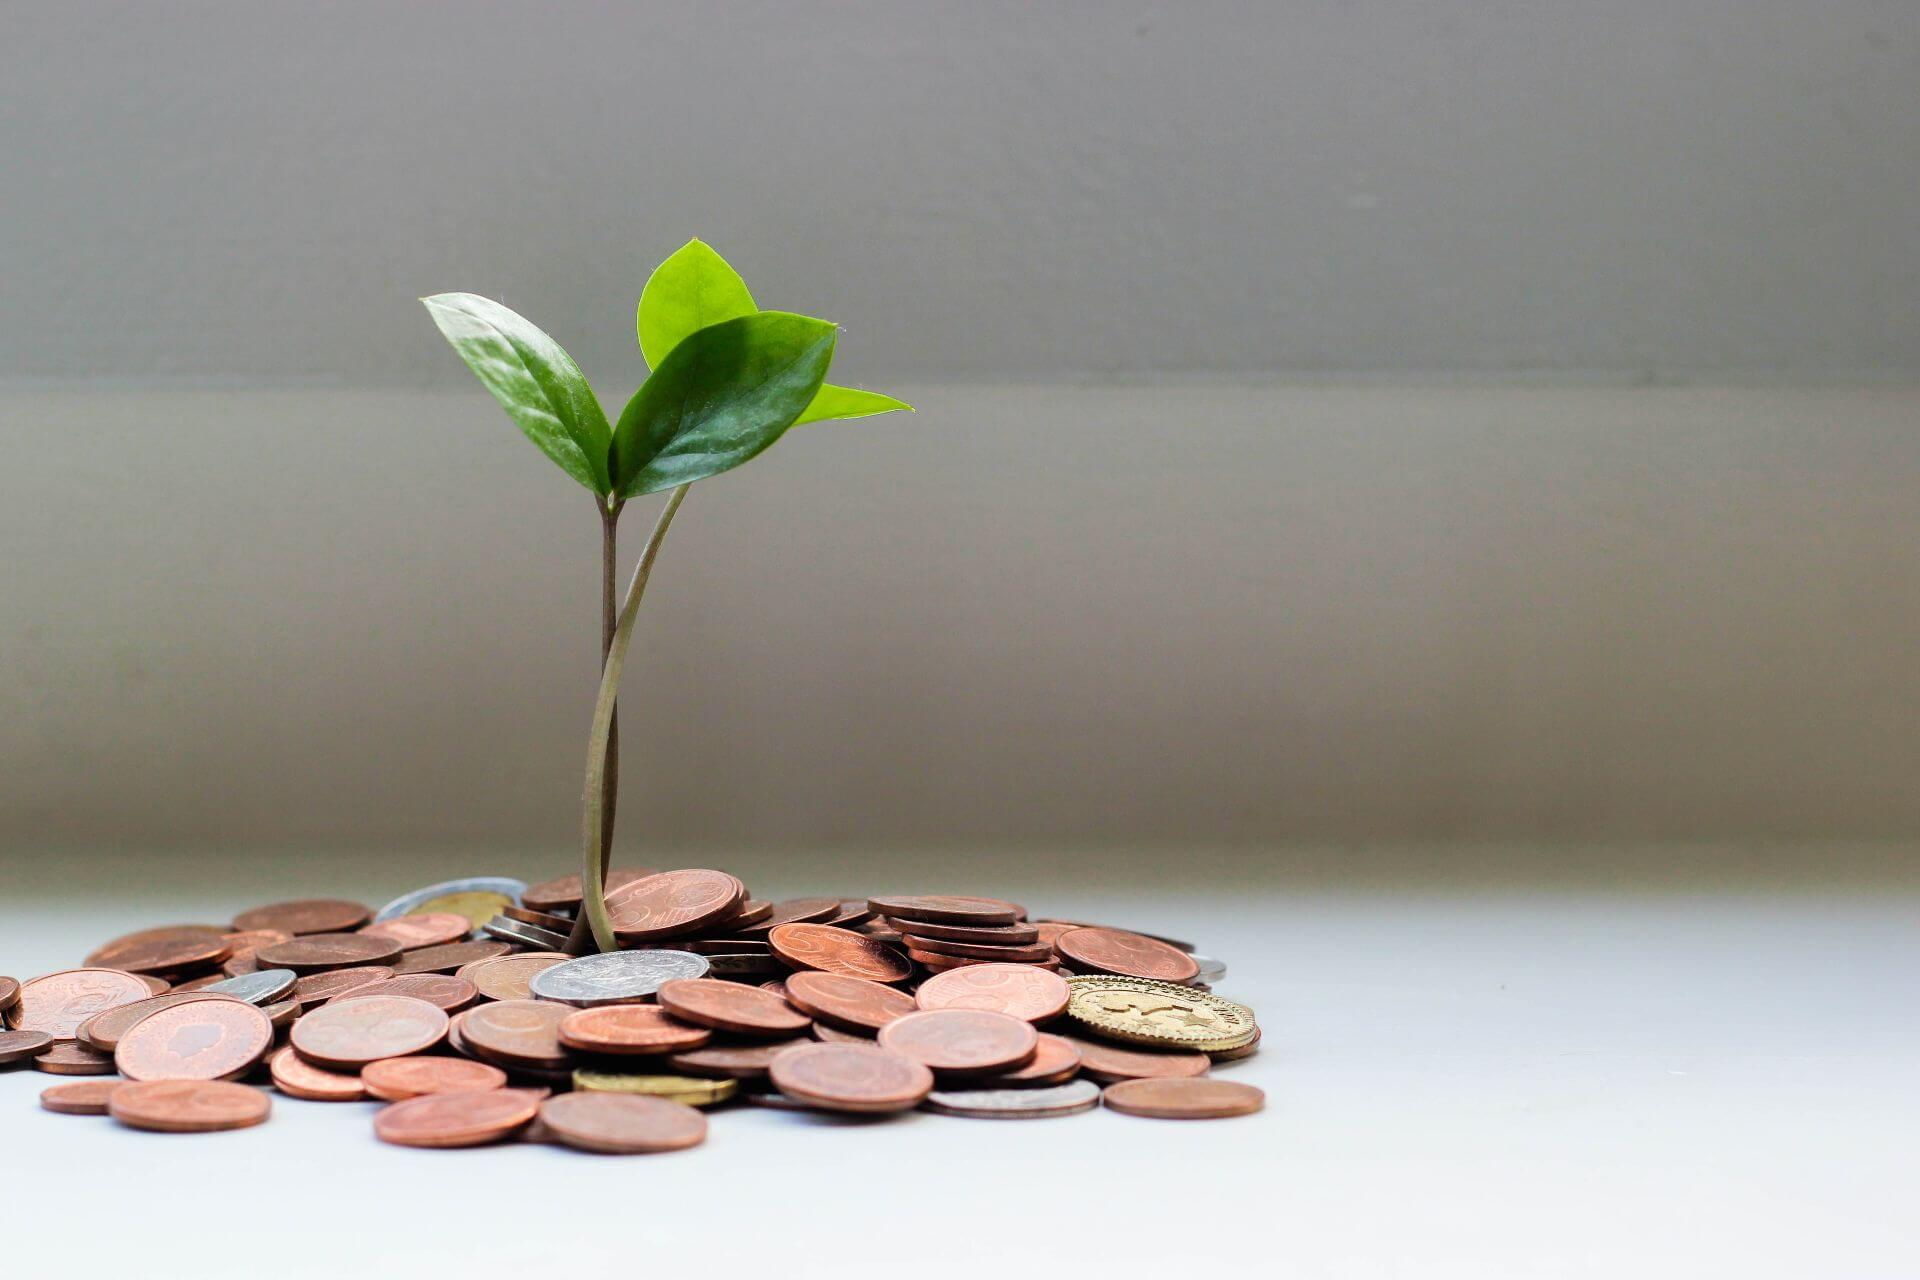 Small green plant growing out of a pile of coins in from of a white background